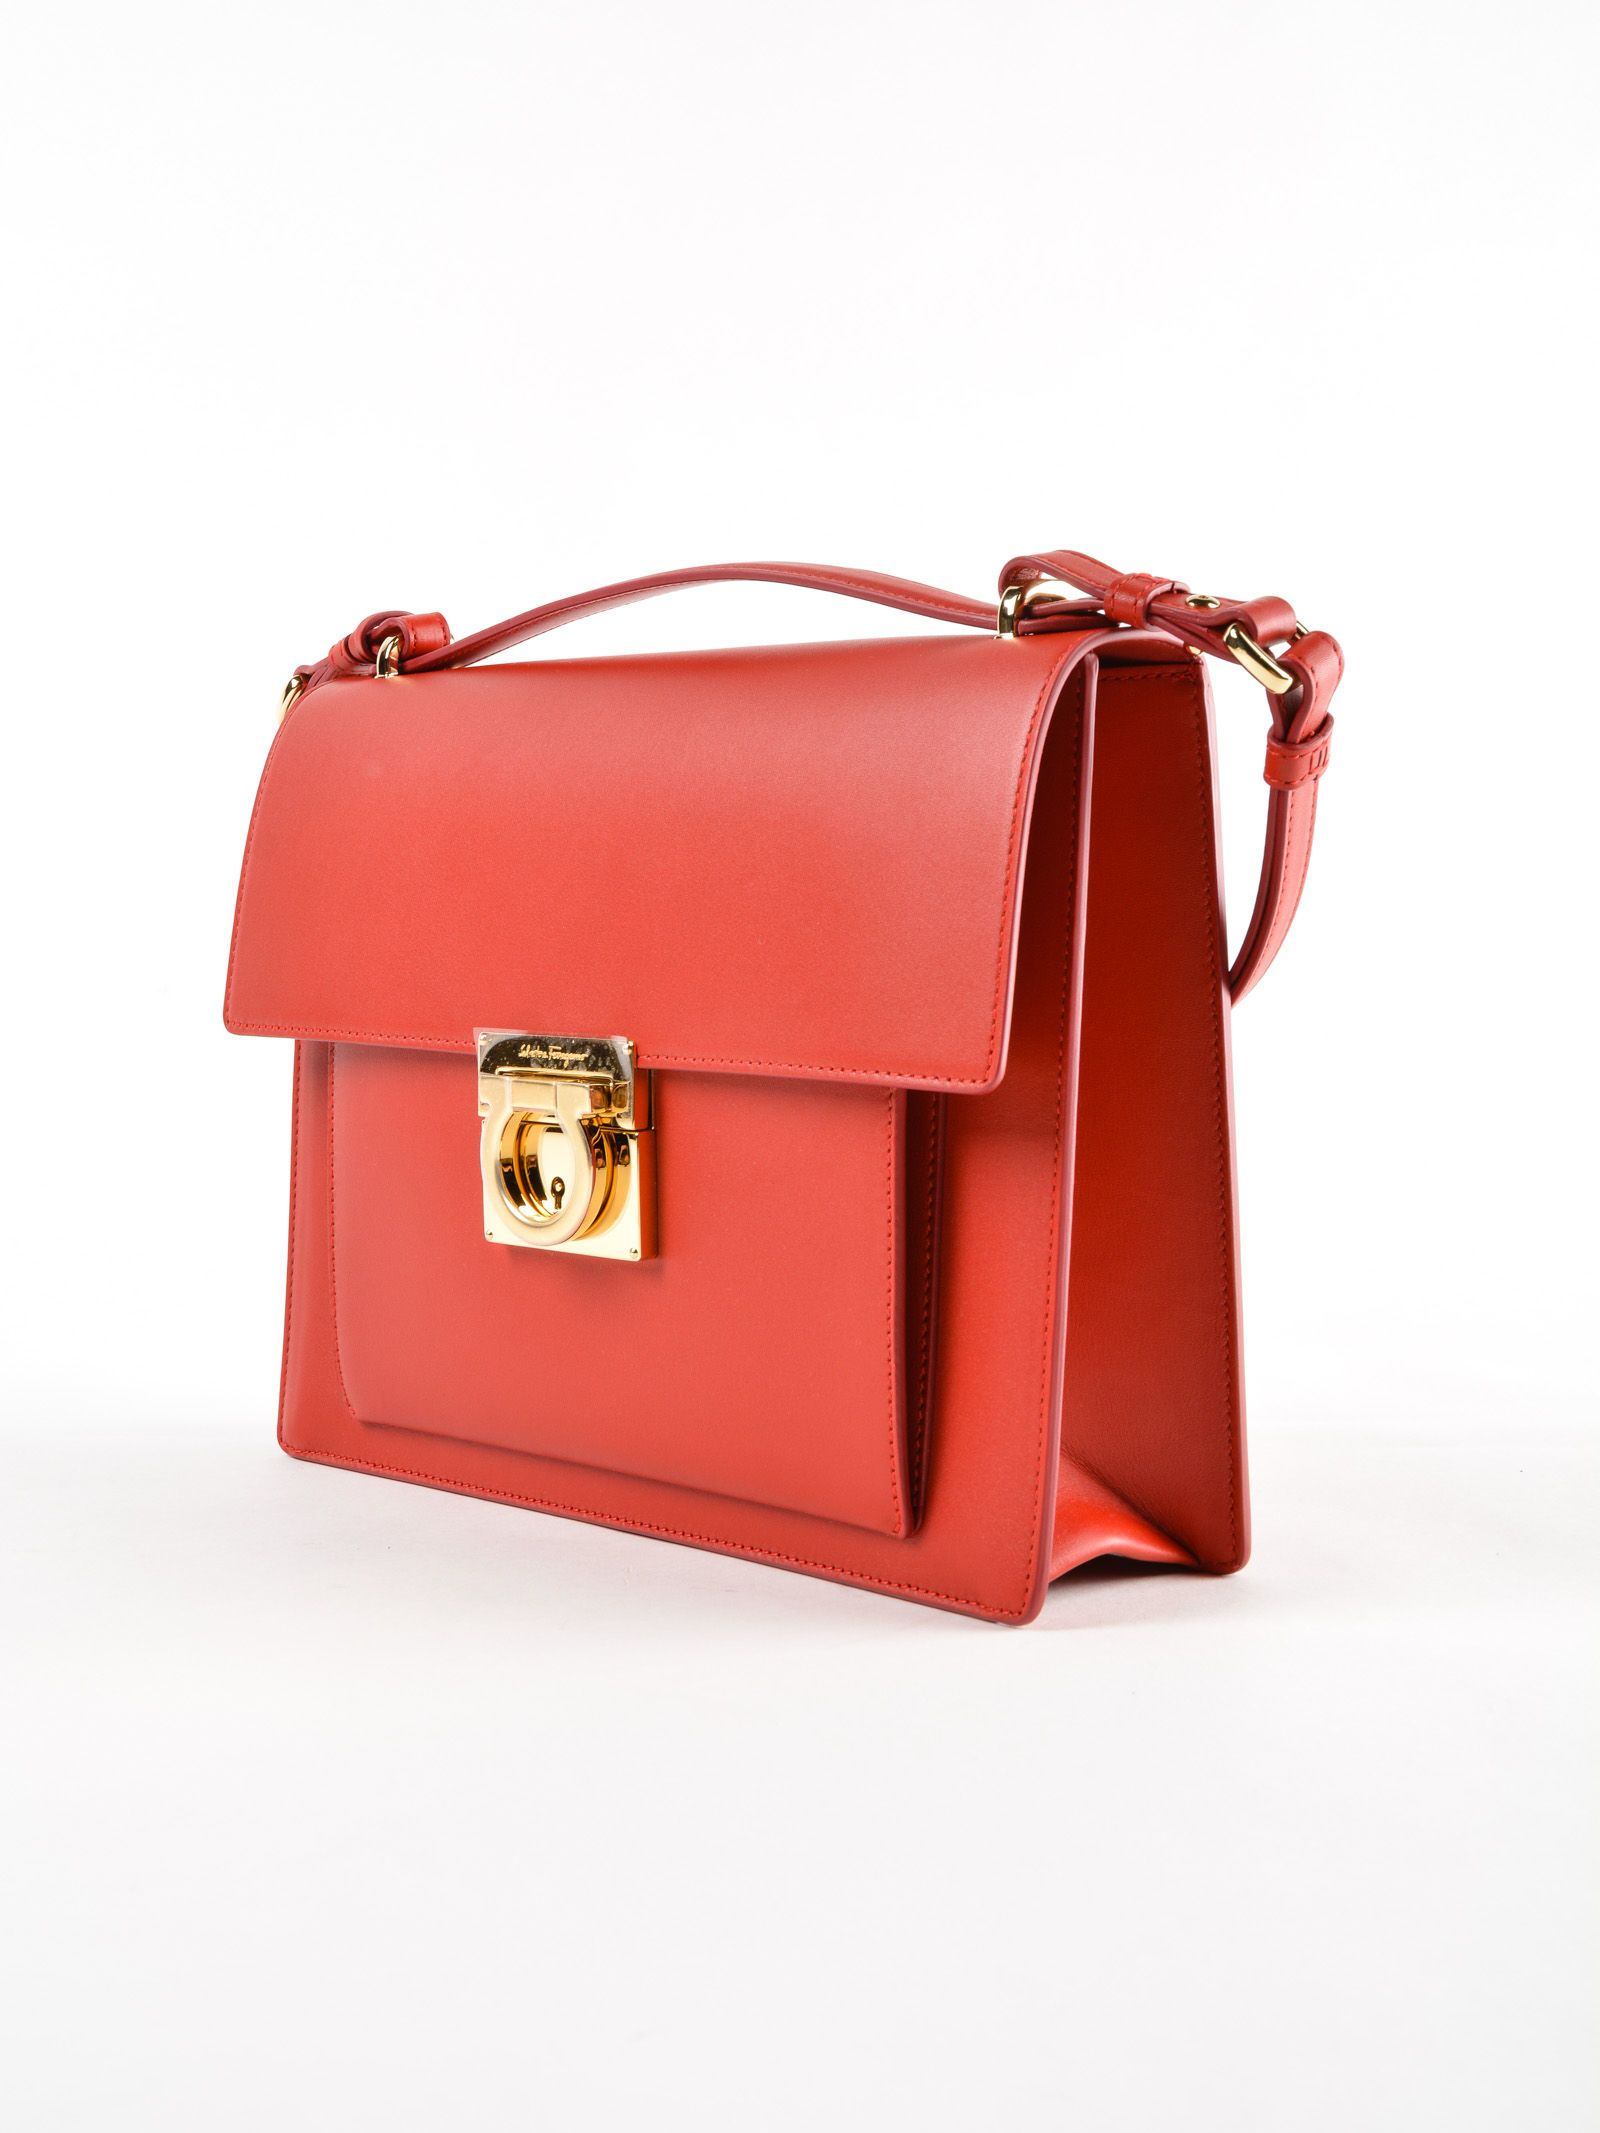 Shoulder Bag for Women, Carrie, Lipstick Red, Leather, 2017, one size Salvatore Ferragamo